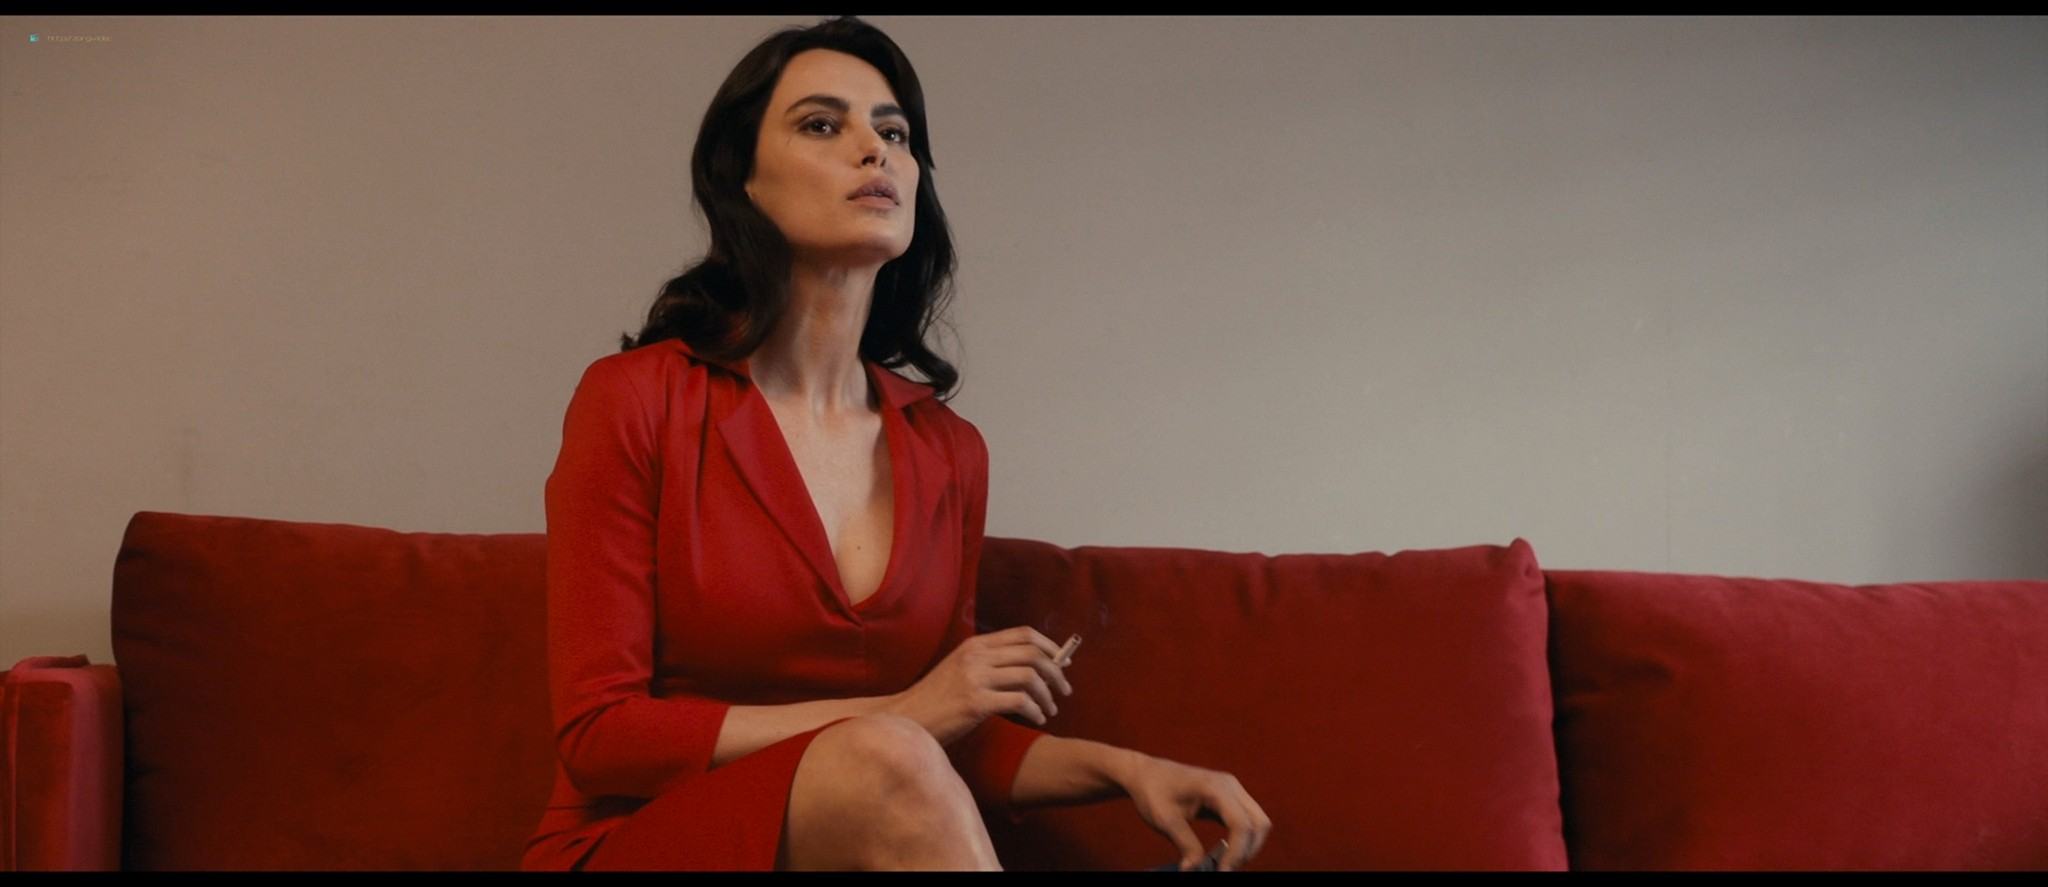 Catrinel Marlon nude butt and sex- The Whistlers (2019) HD 1080p Web (17)